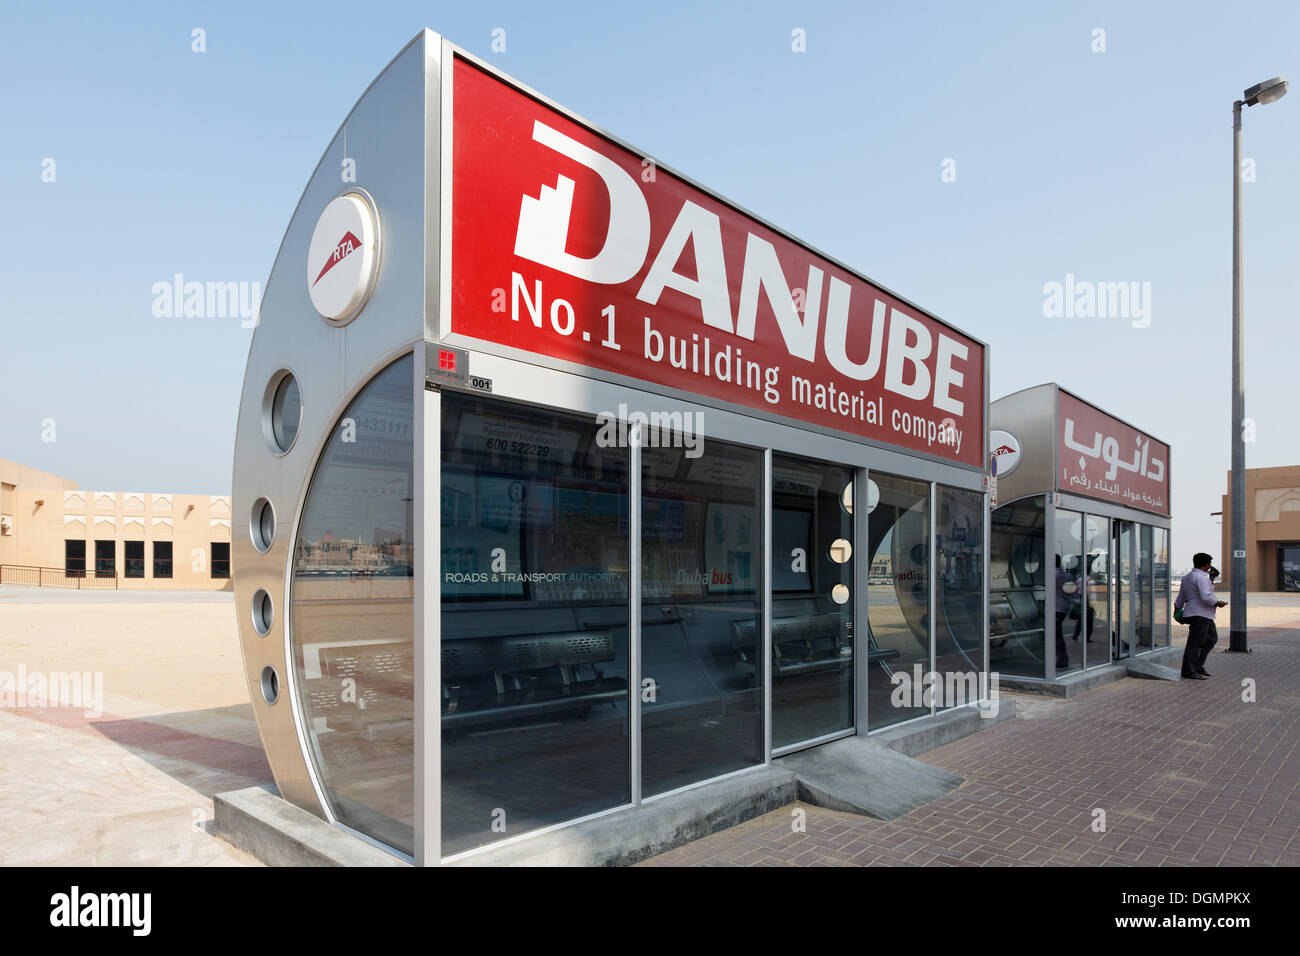 Air-conditioned bus shelters, Dubai, United Arab Emirates, Middle East, Asia - Stock Image